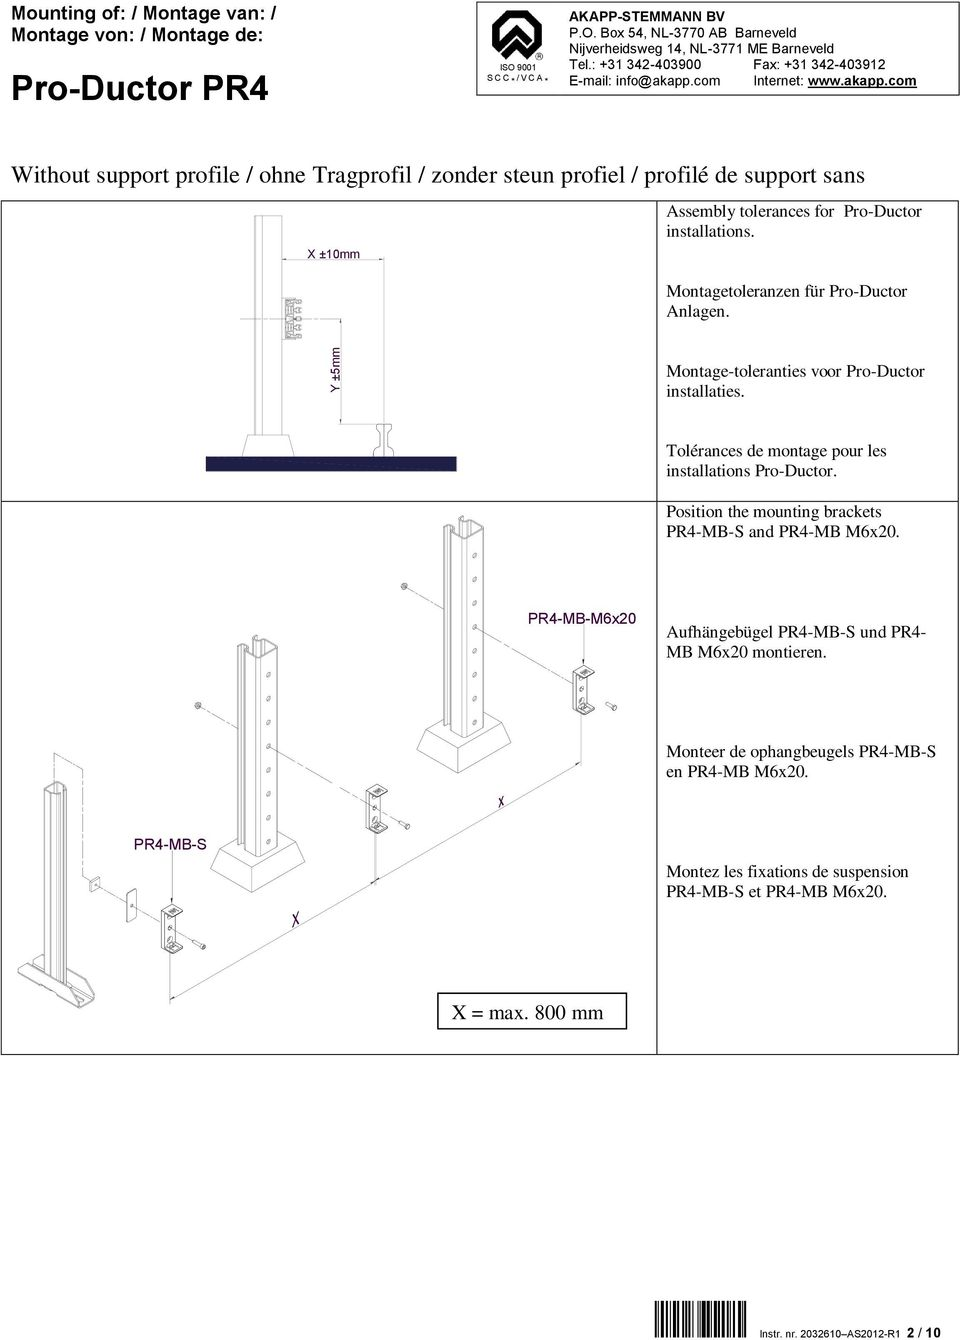 Tolérances de montage pour les installations Pro-Ductor. Position the mounting brackets PR4-MB-S and PR4-MB M6x20.